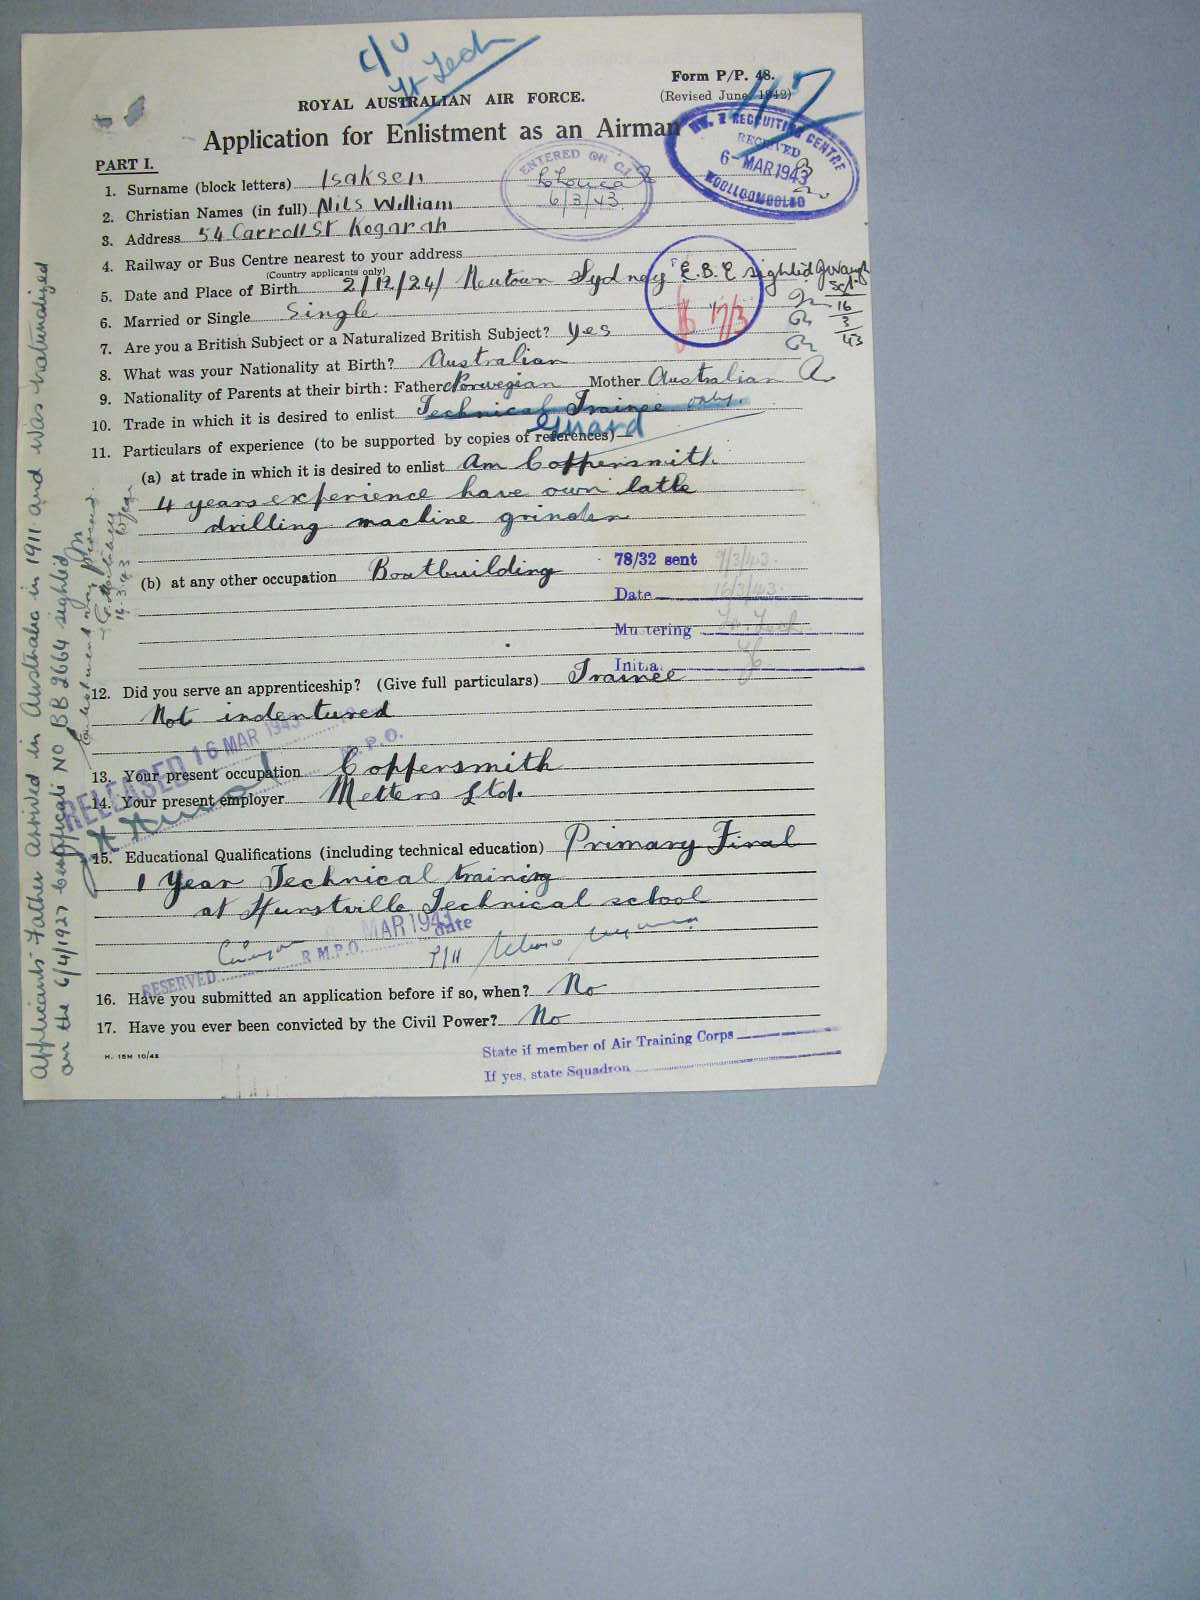 World War II Military Service Record